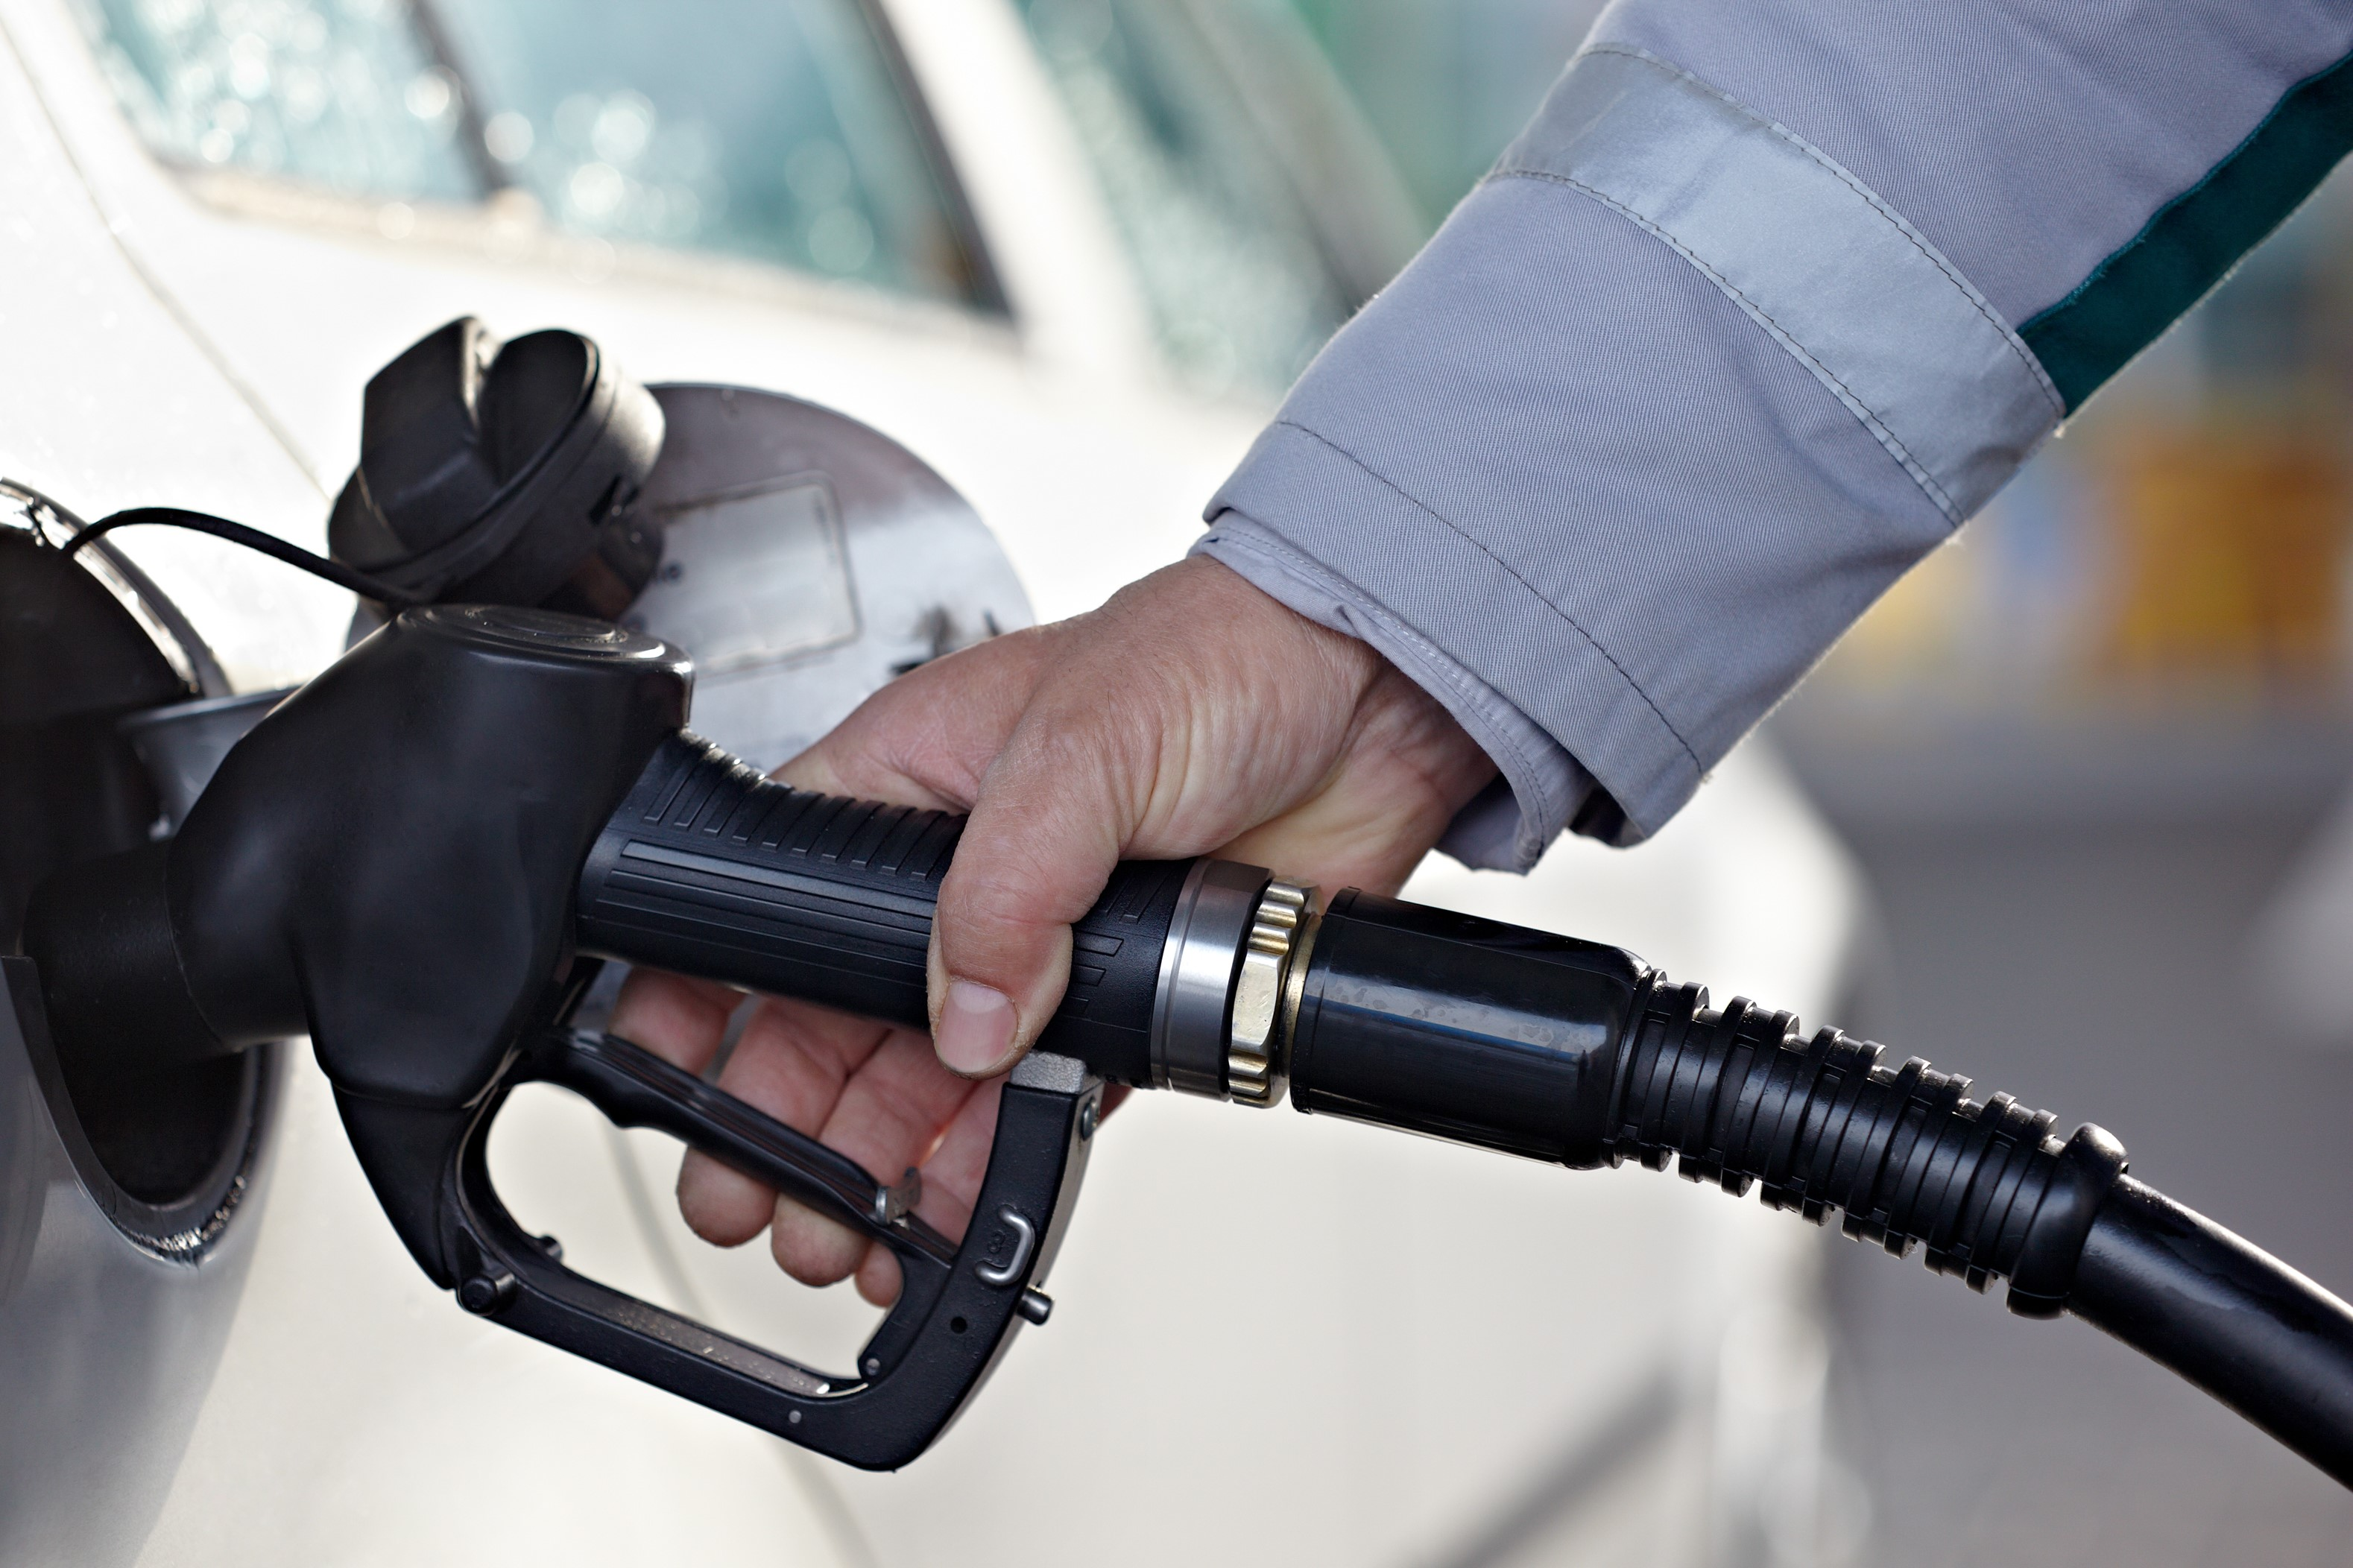 Gas Prices Go Faster in El Paso than the Rest of the US